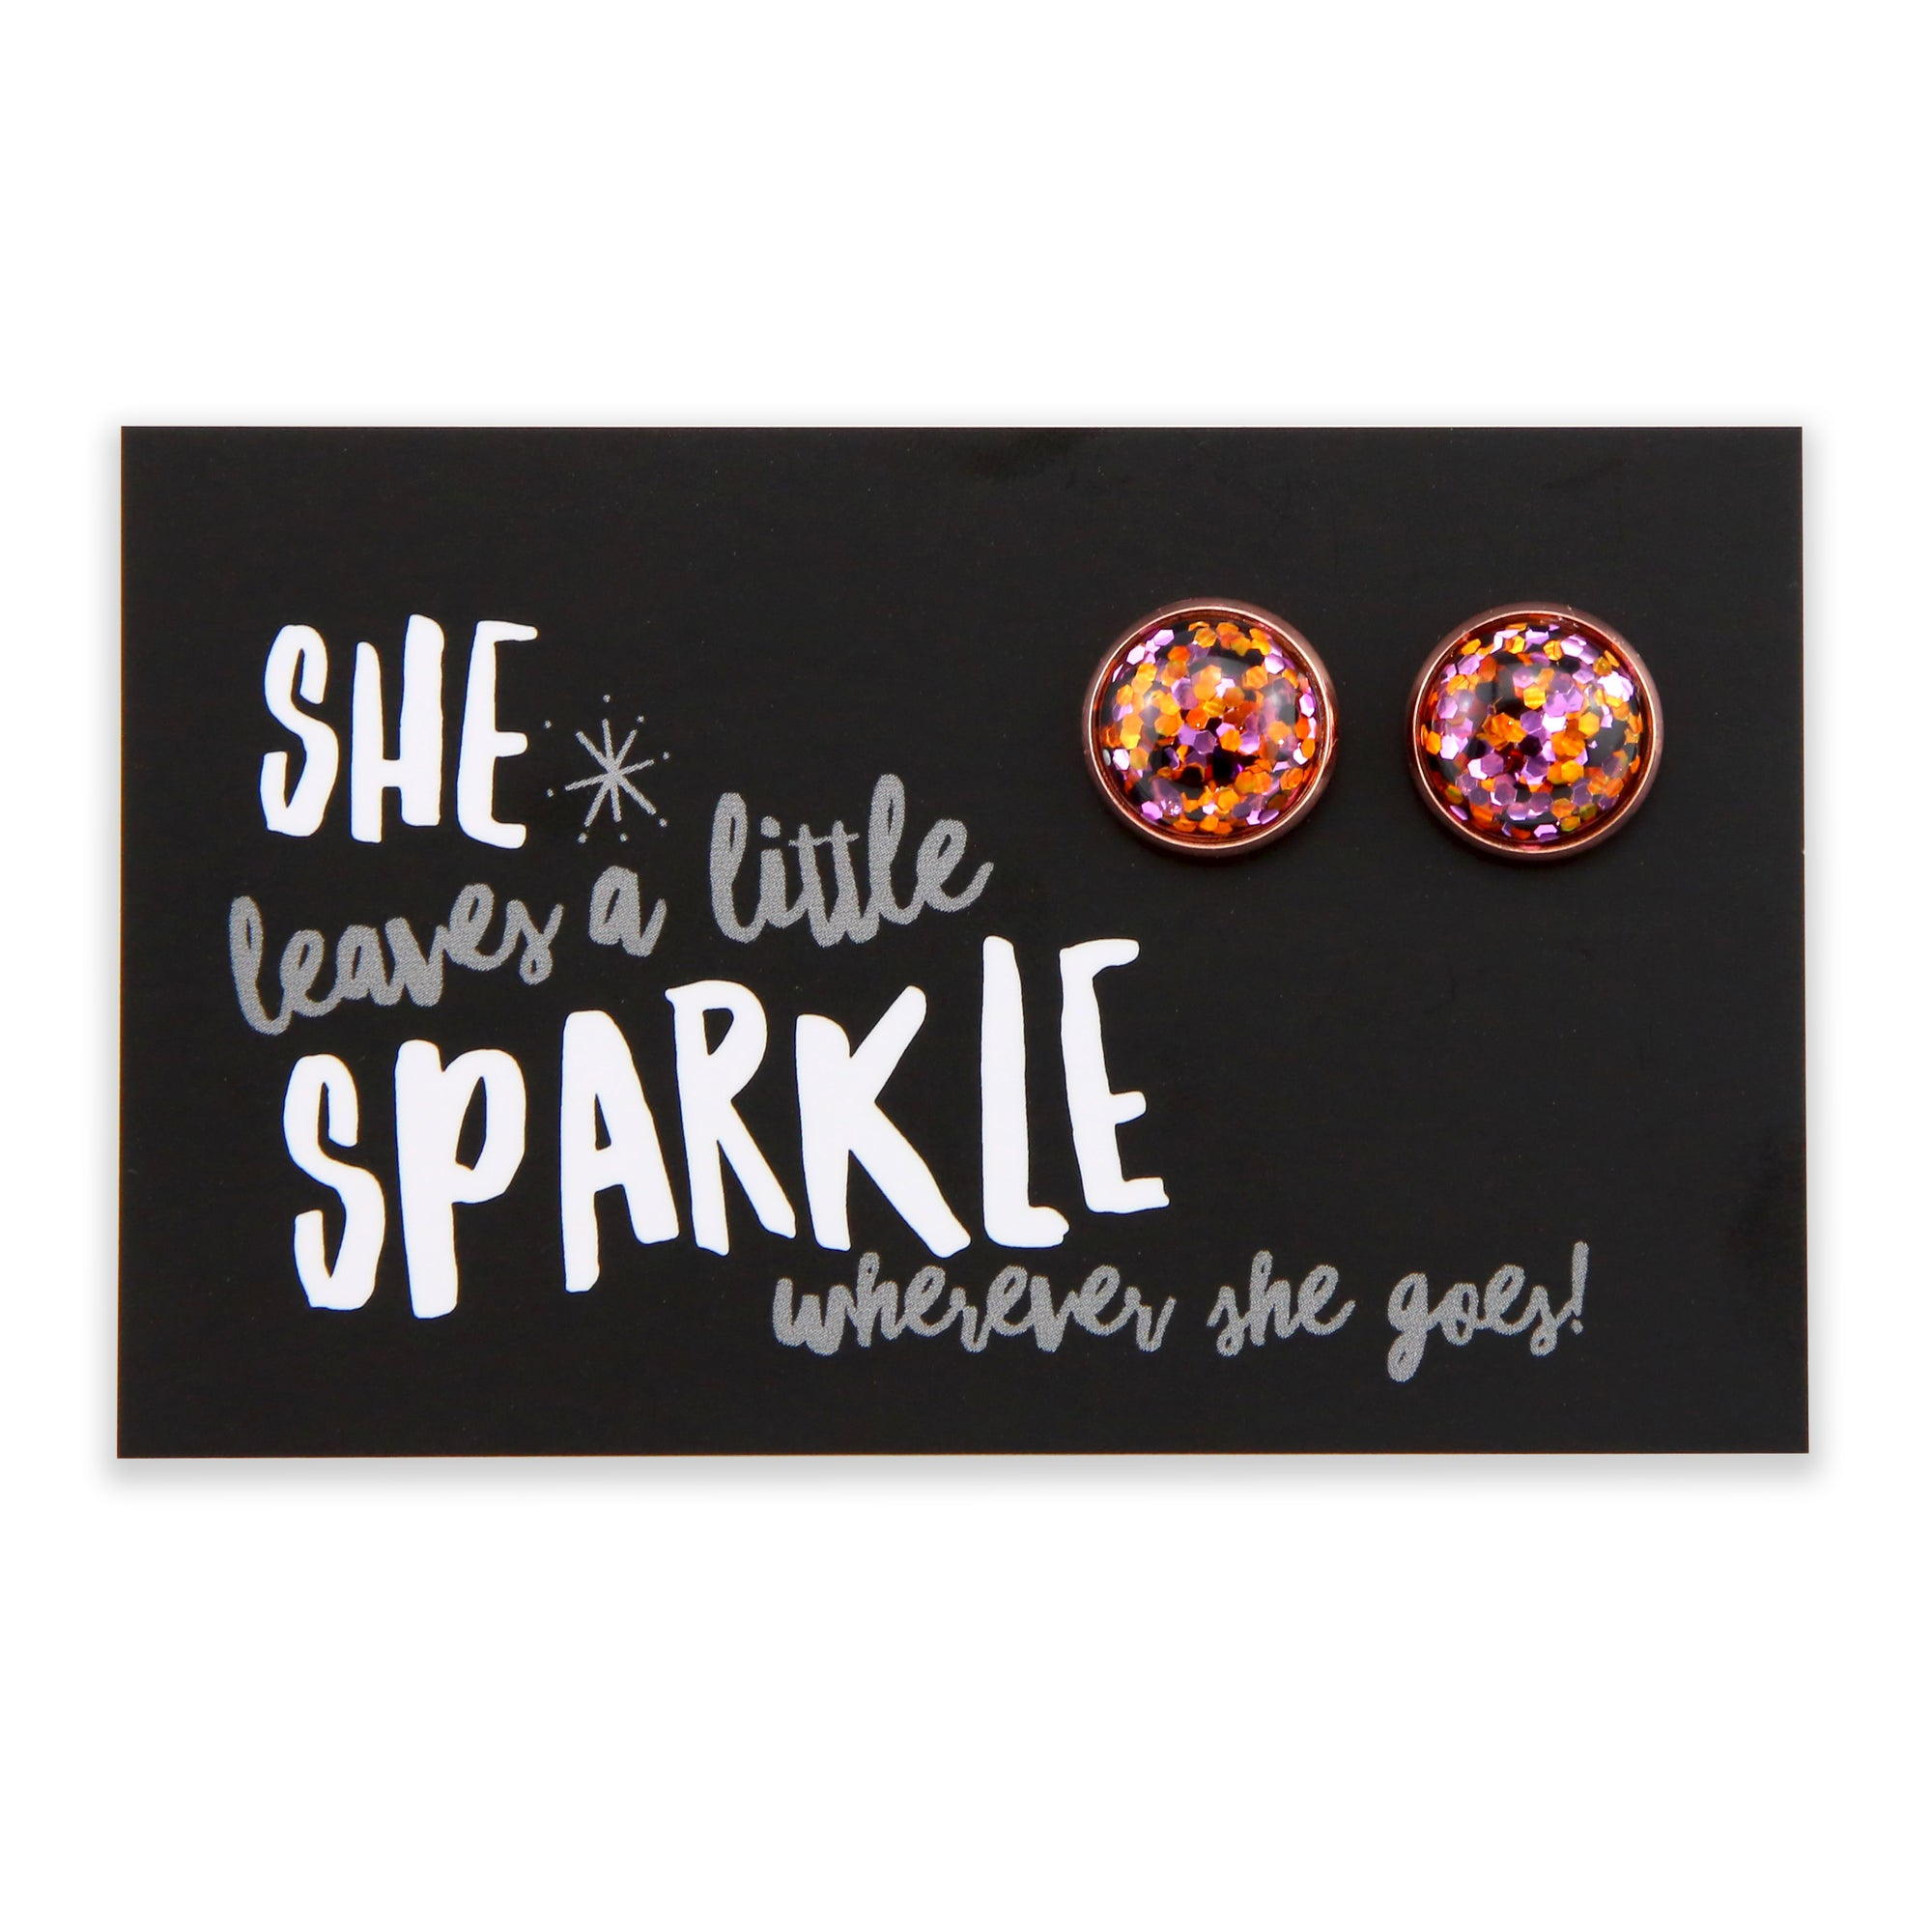 SPARKLEFEST - She Leaves A Little Sparkle -Rose Gold Stud Earrings - Dazzle Pop (2103-F)